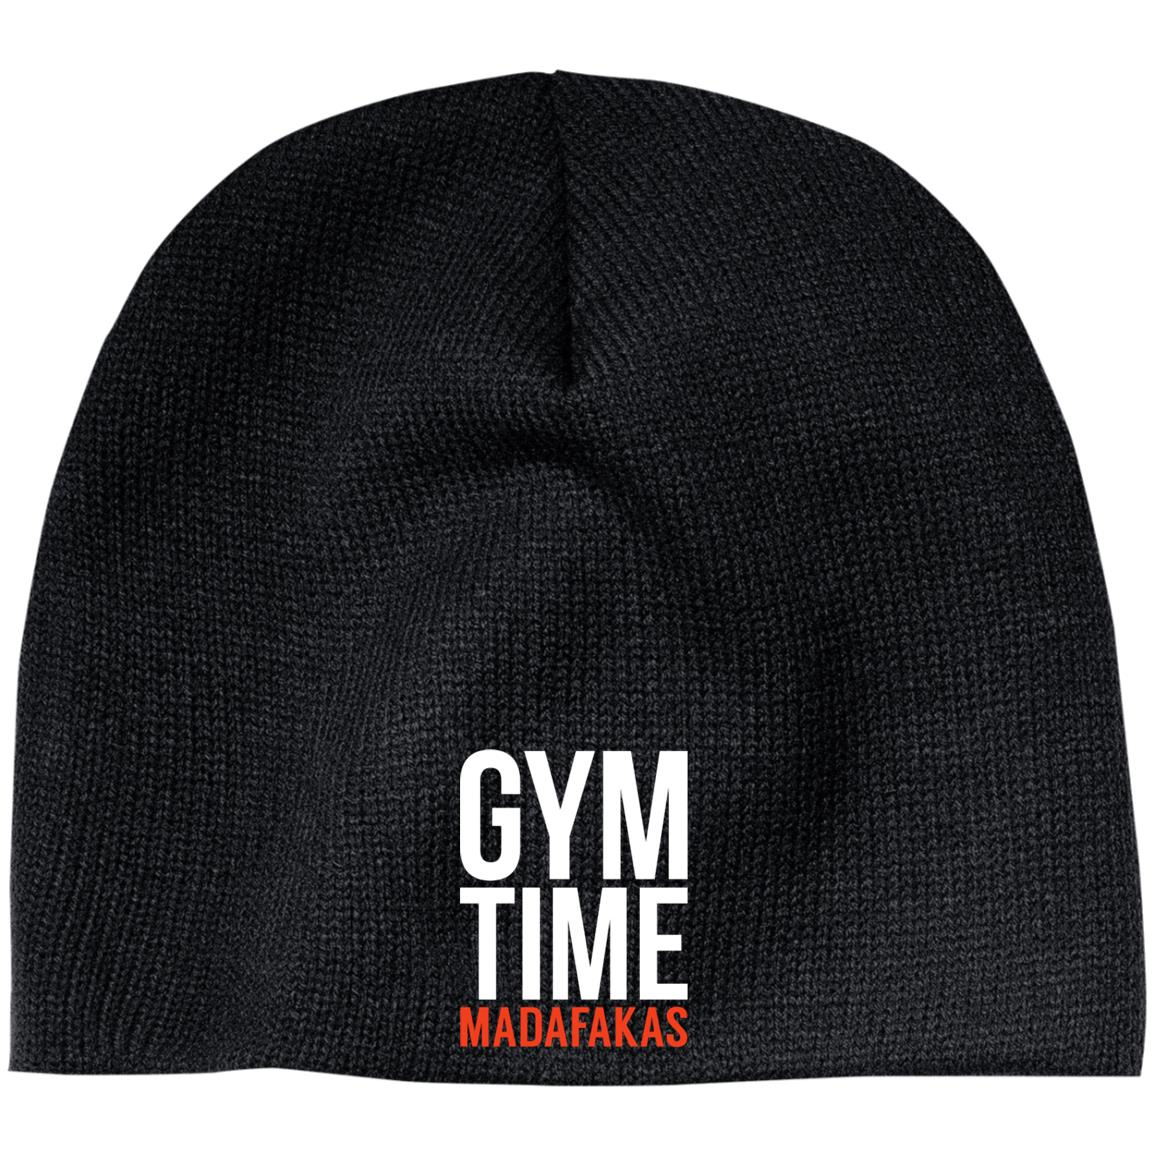 Gym Time Madafakas Beanie